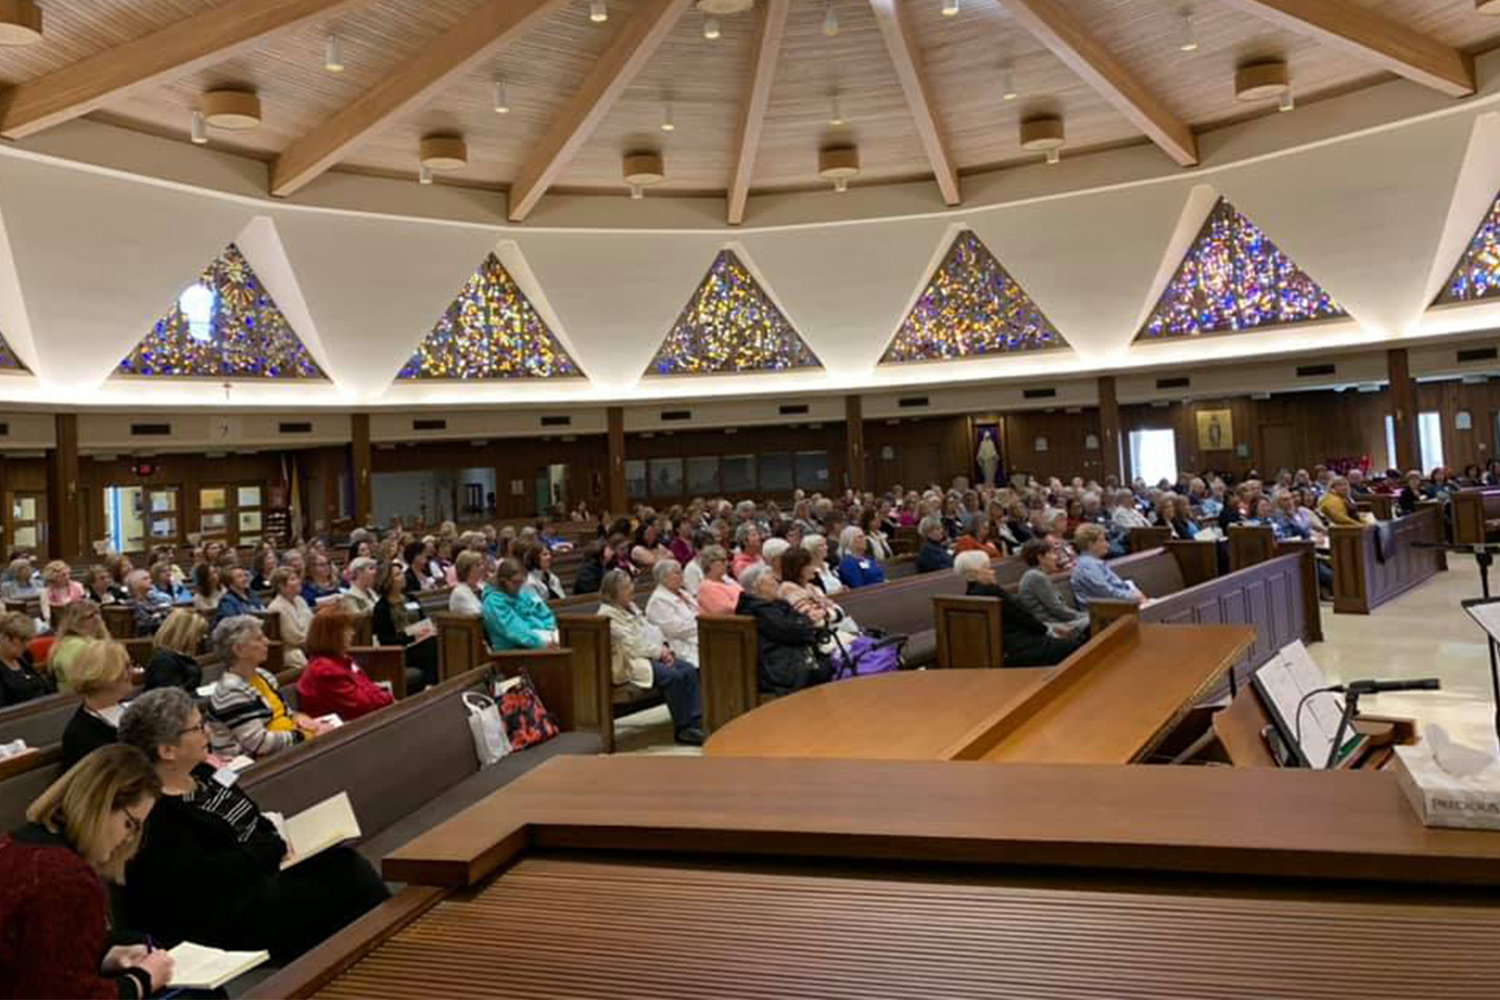 About 300 women from throughout the Jefferson City diocese take part in a diocesan Lenten women's retreat with inspirational Catholic author and speaker Kelly Wahlquist in the Cathedral of St. Joseph.